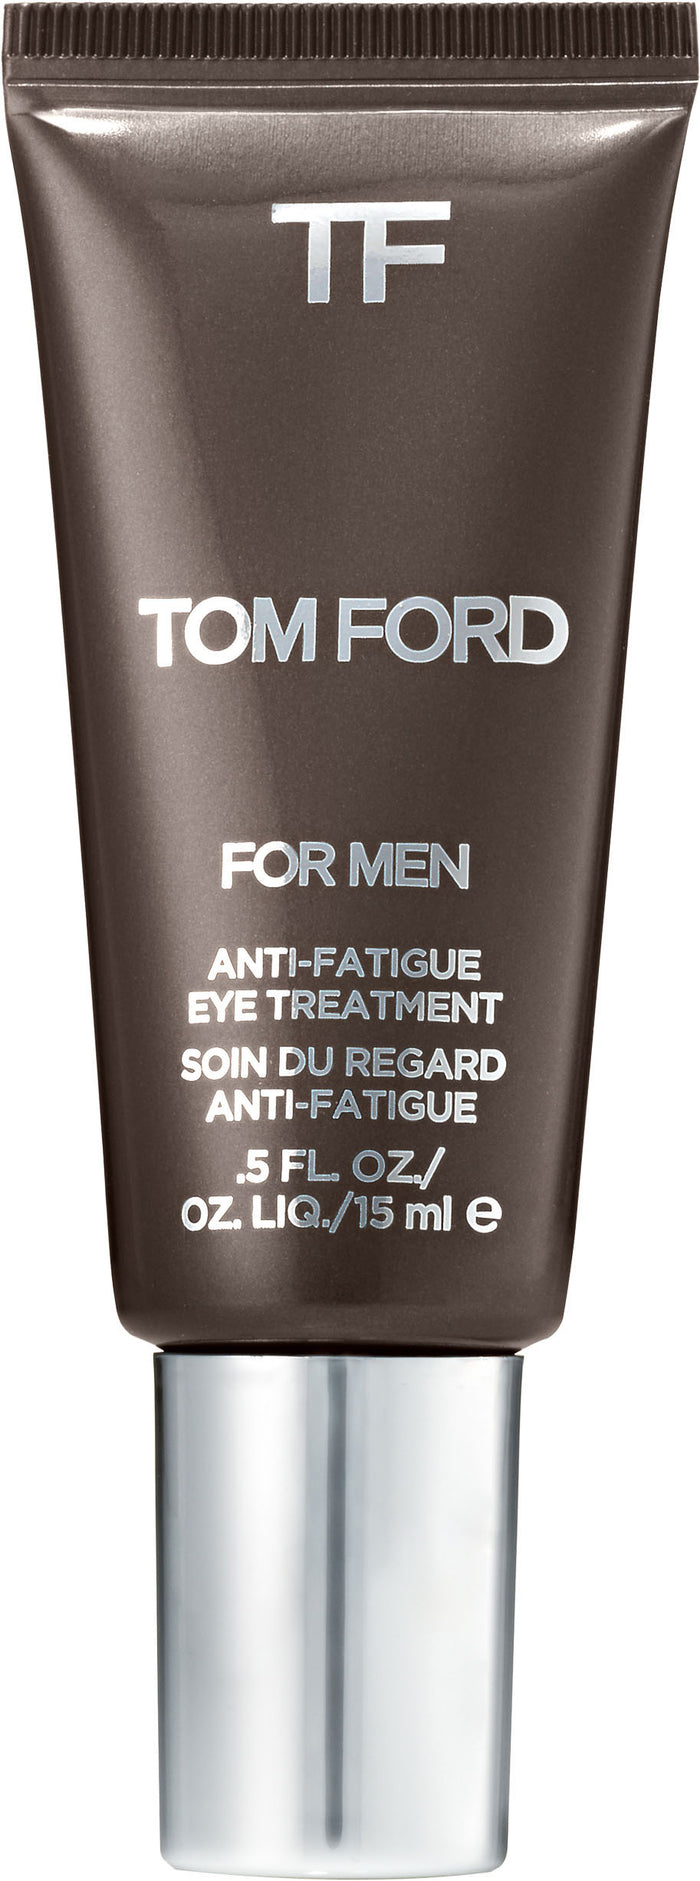 Tom Ford Anti-Fatigue Eye Treatment 15 ml